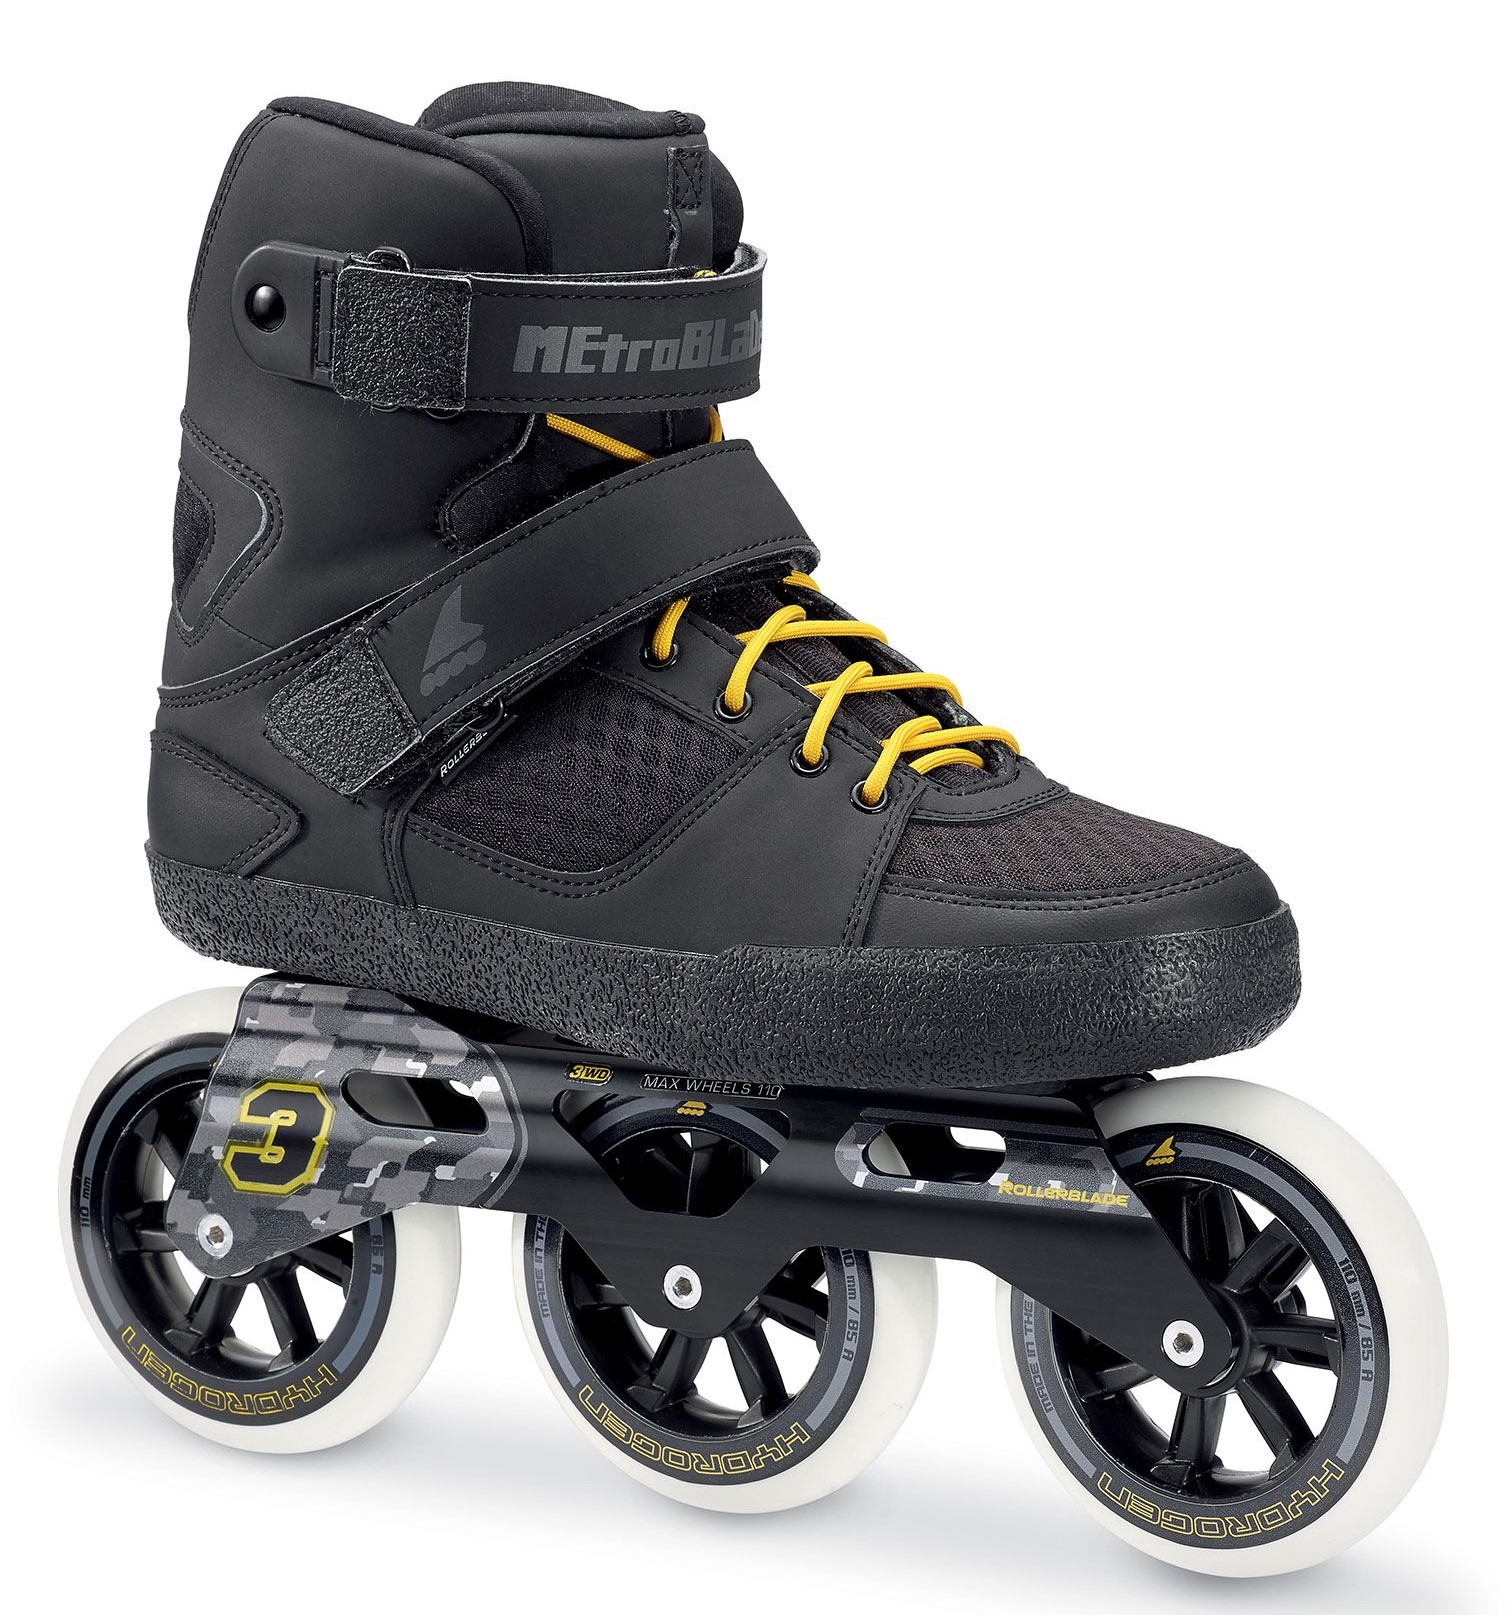 Rollerblade Metroblade 3x110 3WD